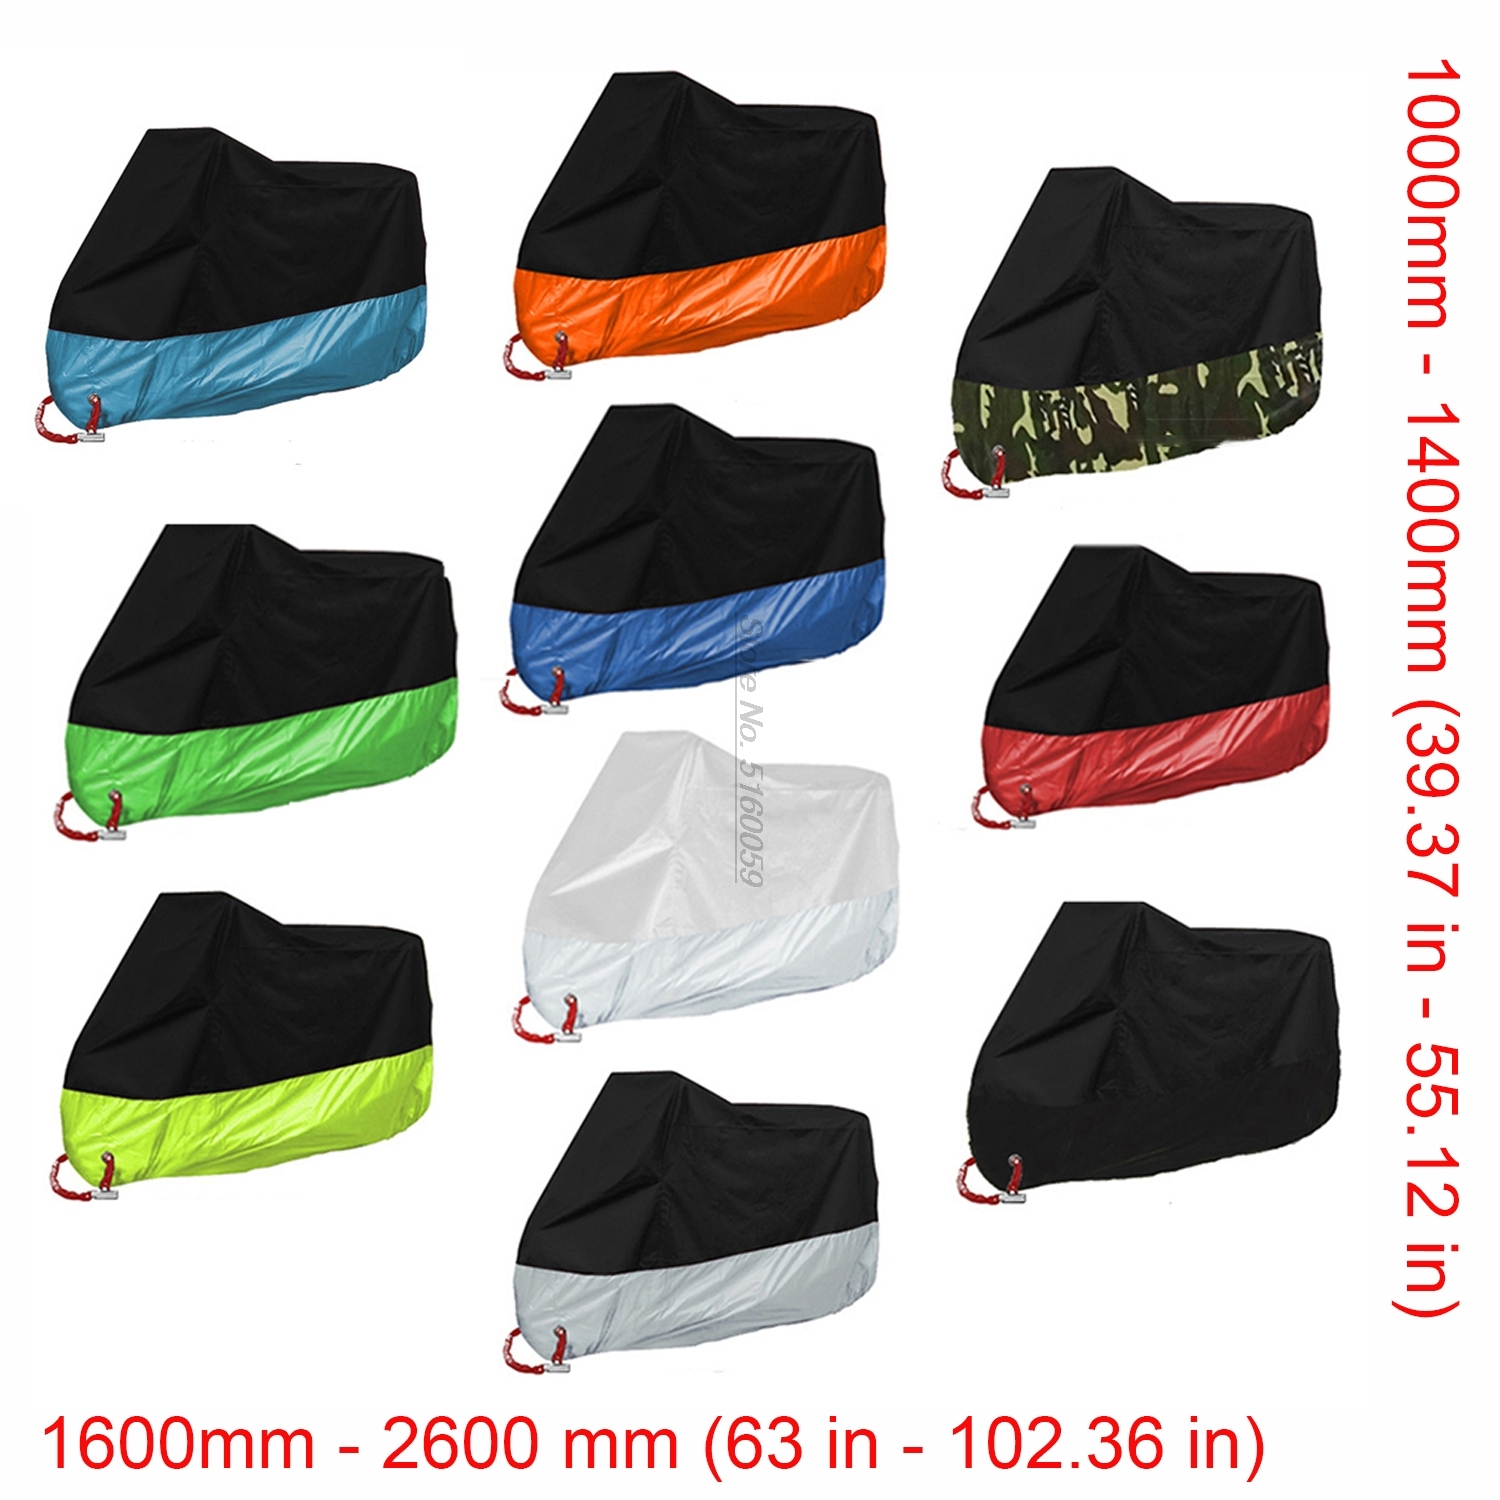 Motorcycle cover for Mt 07 Motorcycle Accessories <font><b>Gl</b></font> 1800 <font><b>Honda</b></font> Motorcycle Cb150R St1300 Virago <font><b>1100</b></font> Suzuki Dl #O0202 image